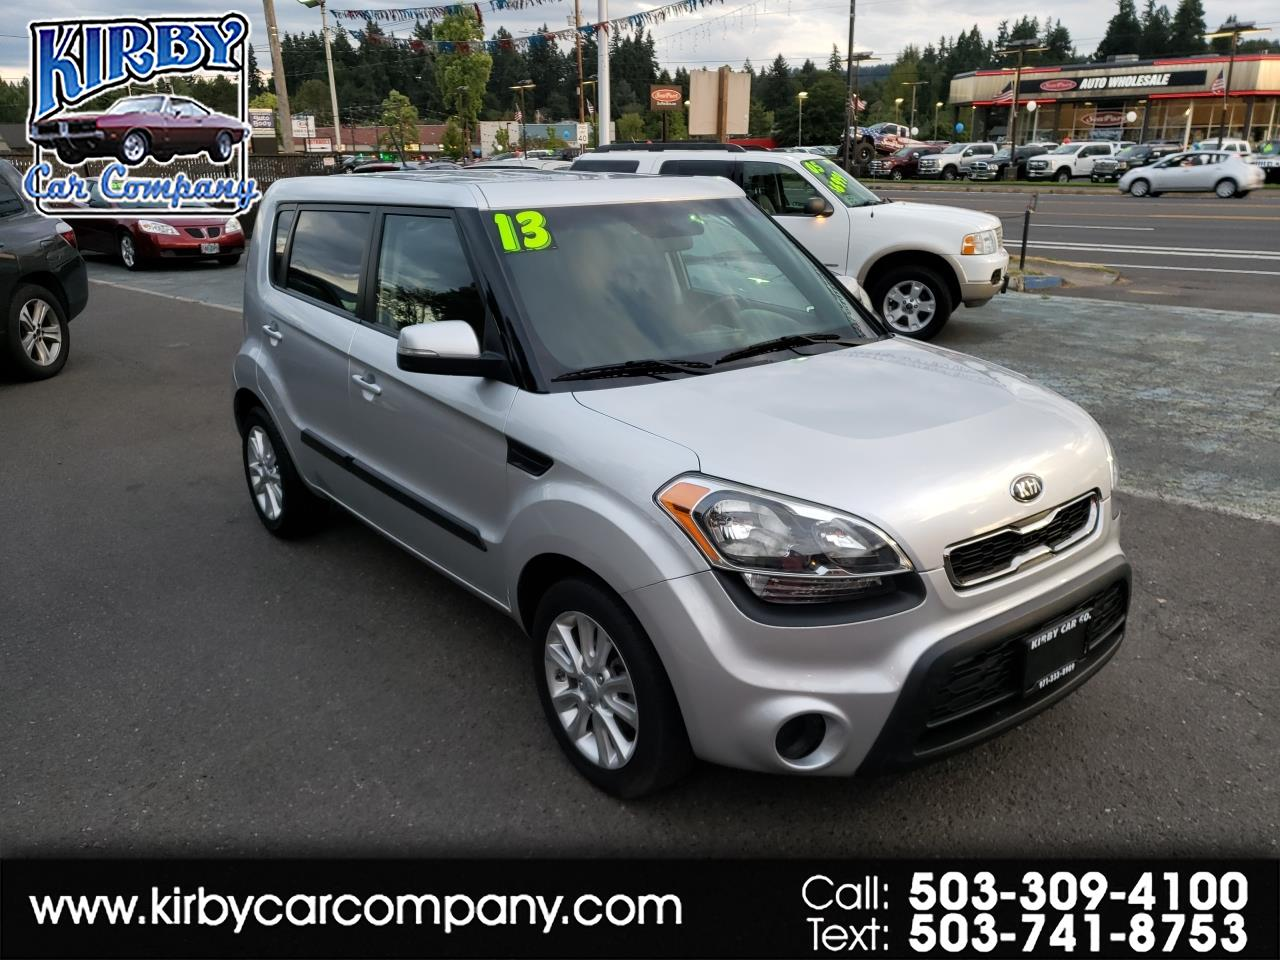 2013 Kia Soul ! Wagon 4d  A/C BLOWS COLD!  HOT MAGS!  33 MPG!